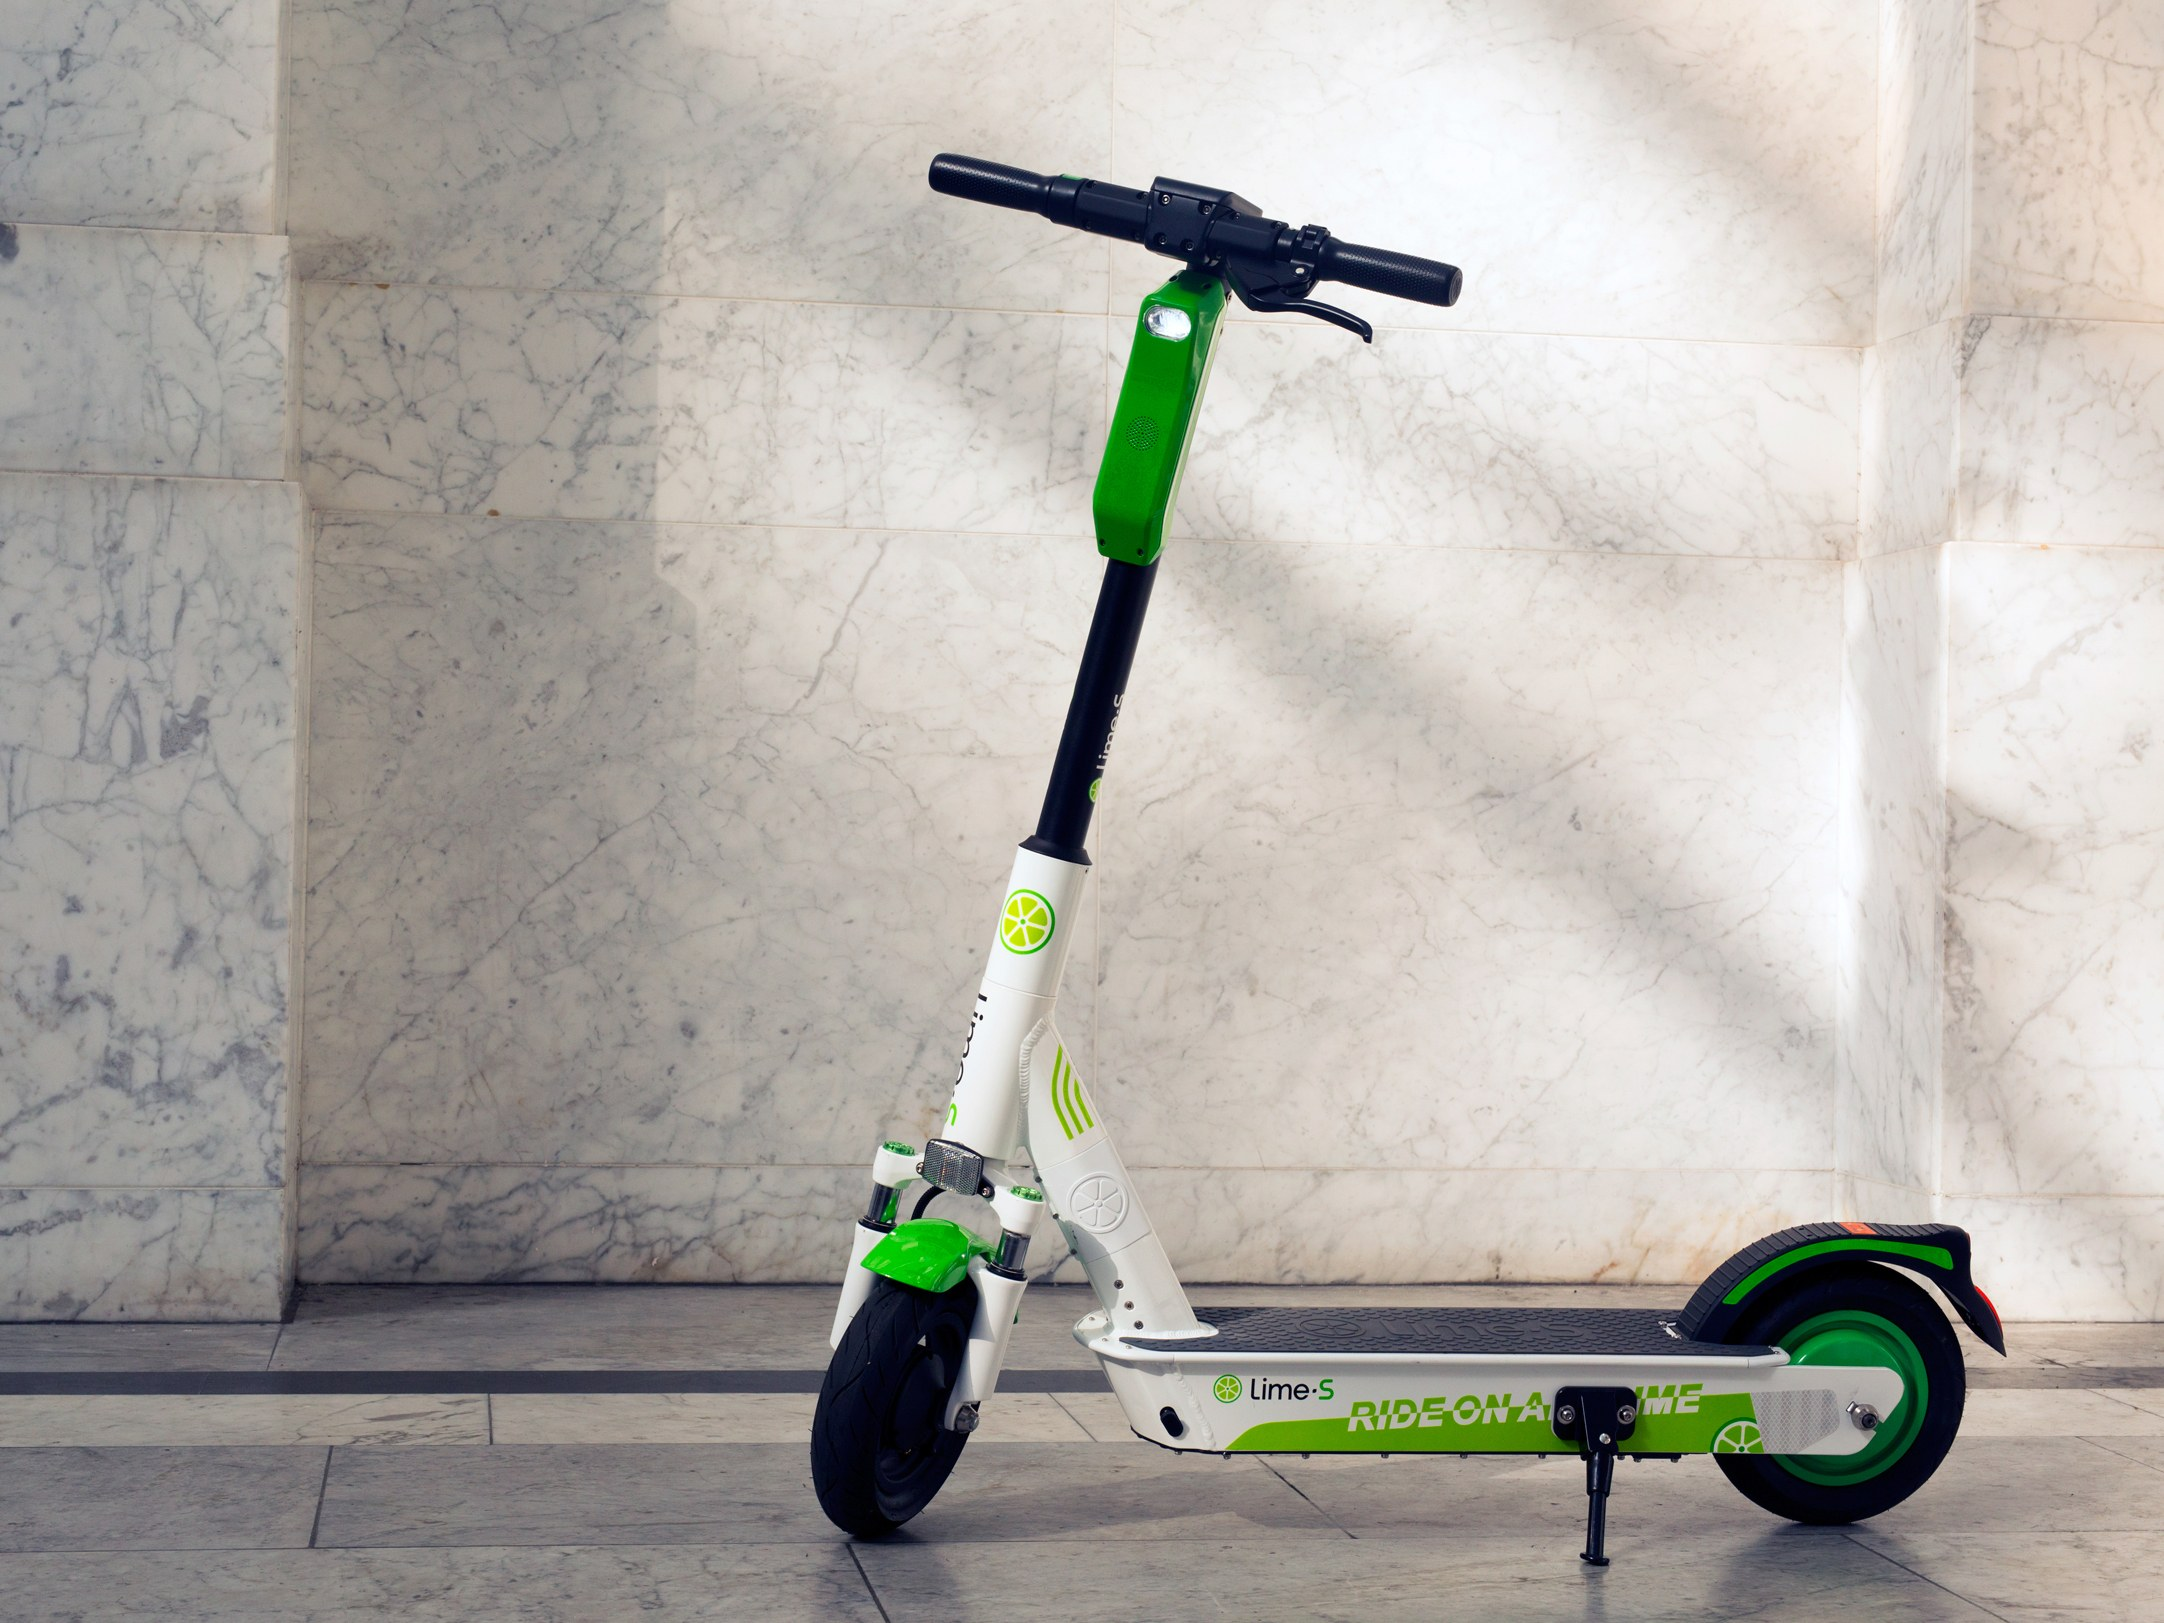 Lime-Scooter-TOP-ART-GG3A1018.jpg